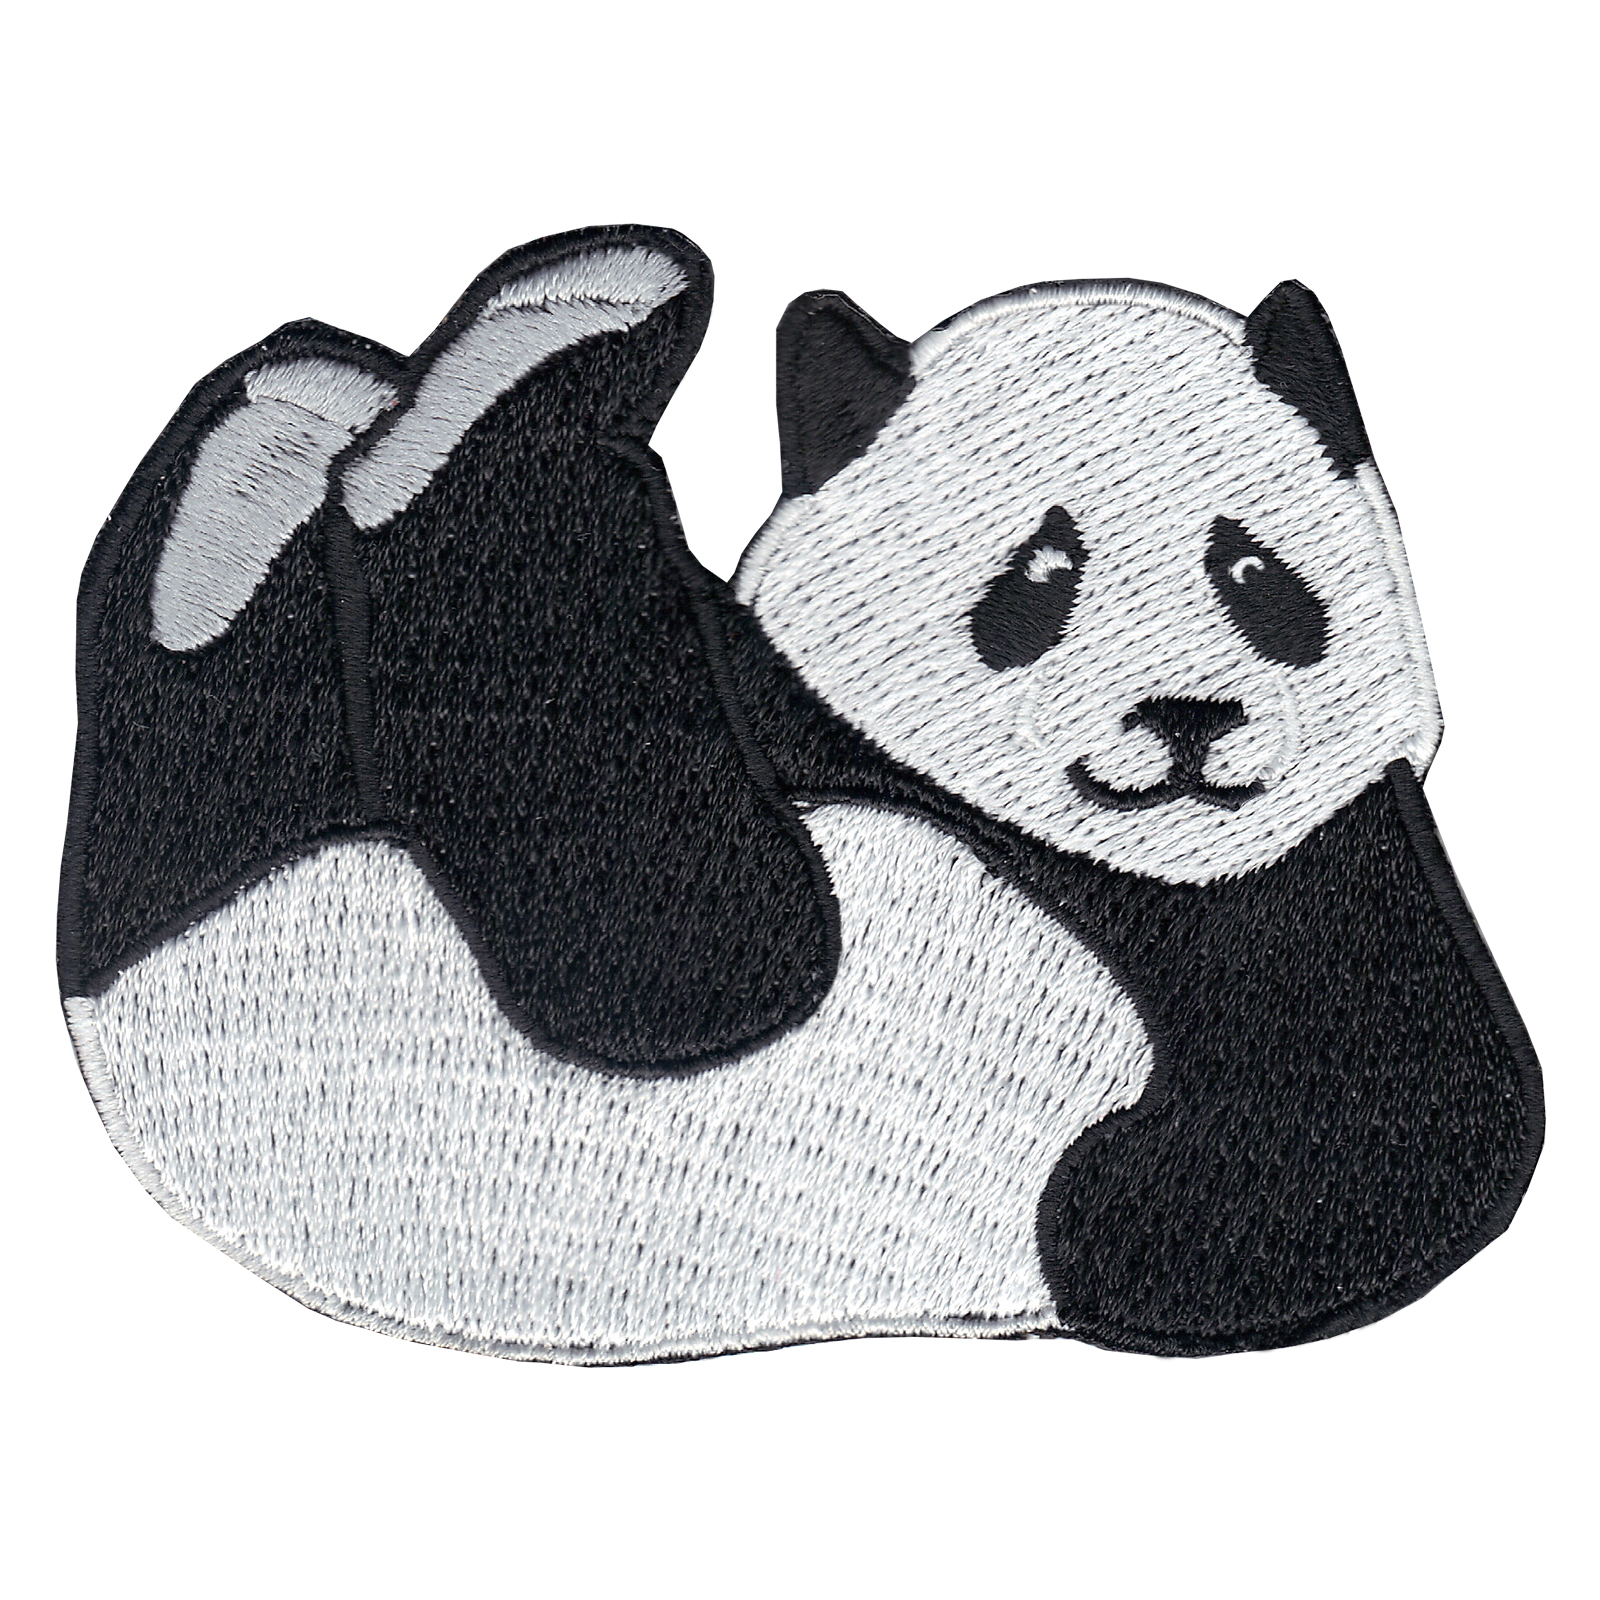 Panda Iron On Applique Patch